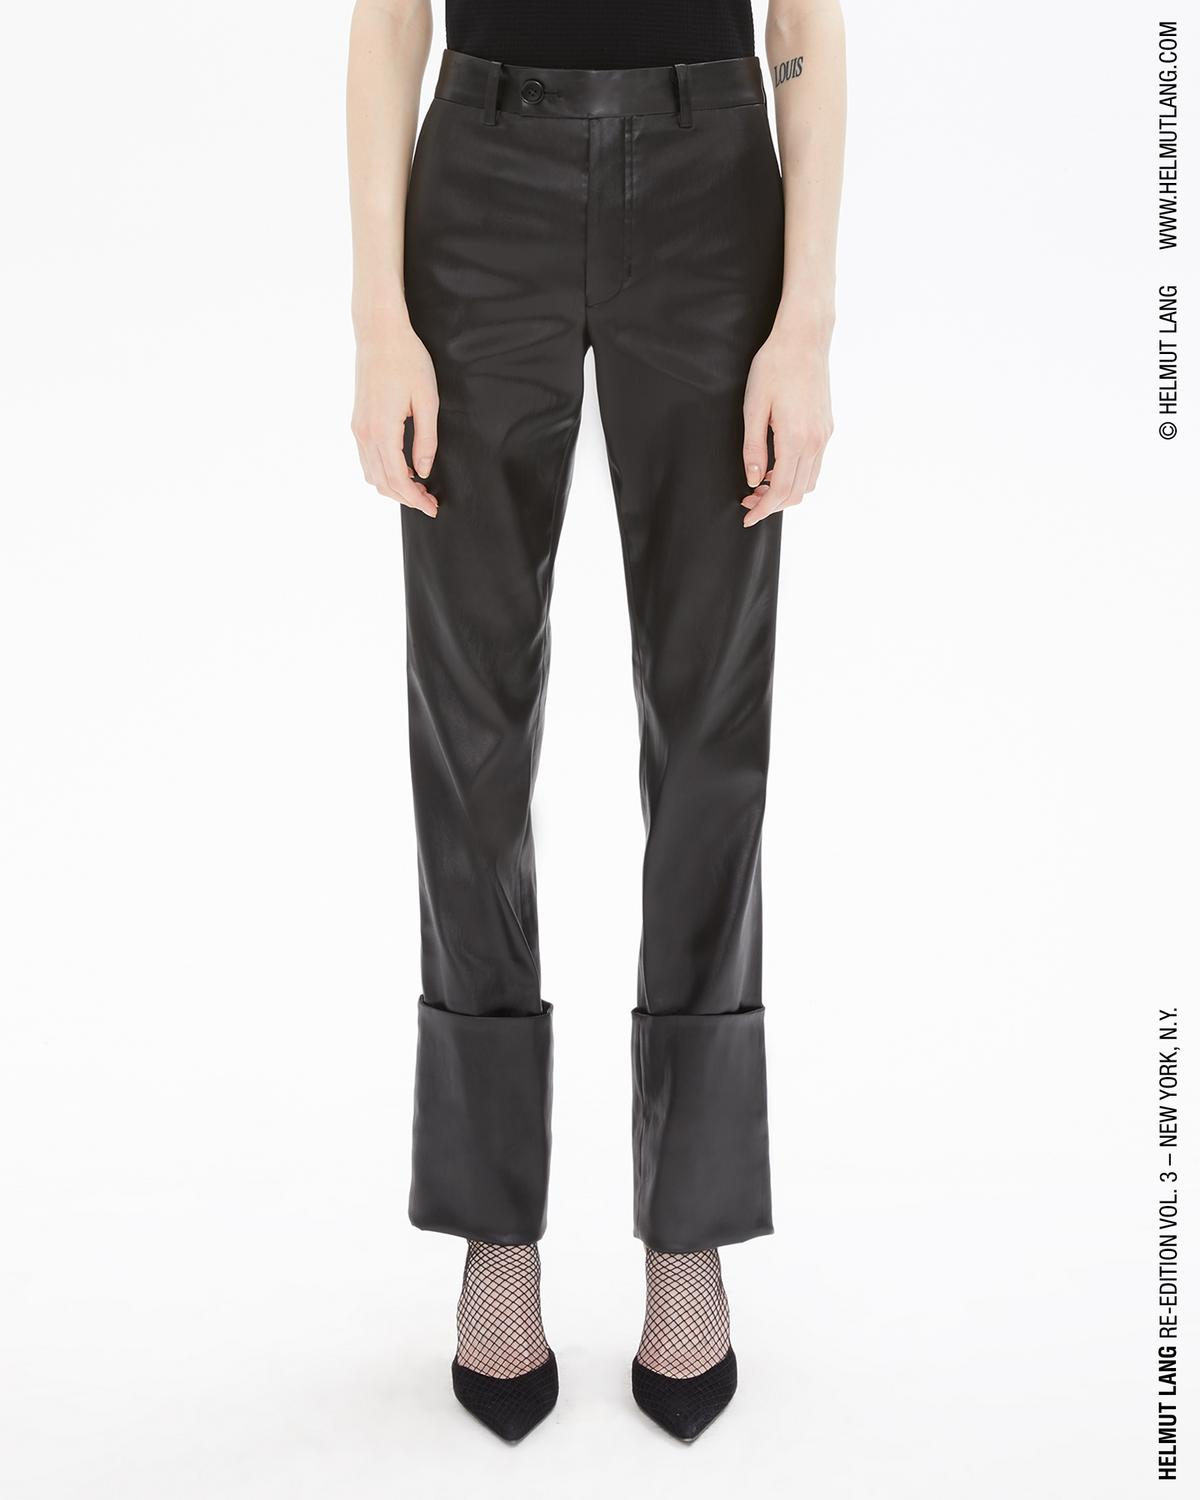 LACQUERED ACETATE EXTREME TURN UP TROUSER